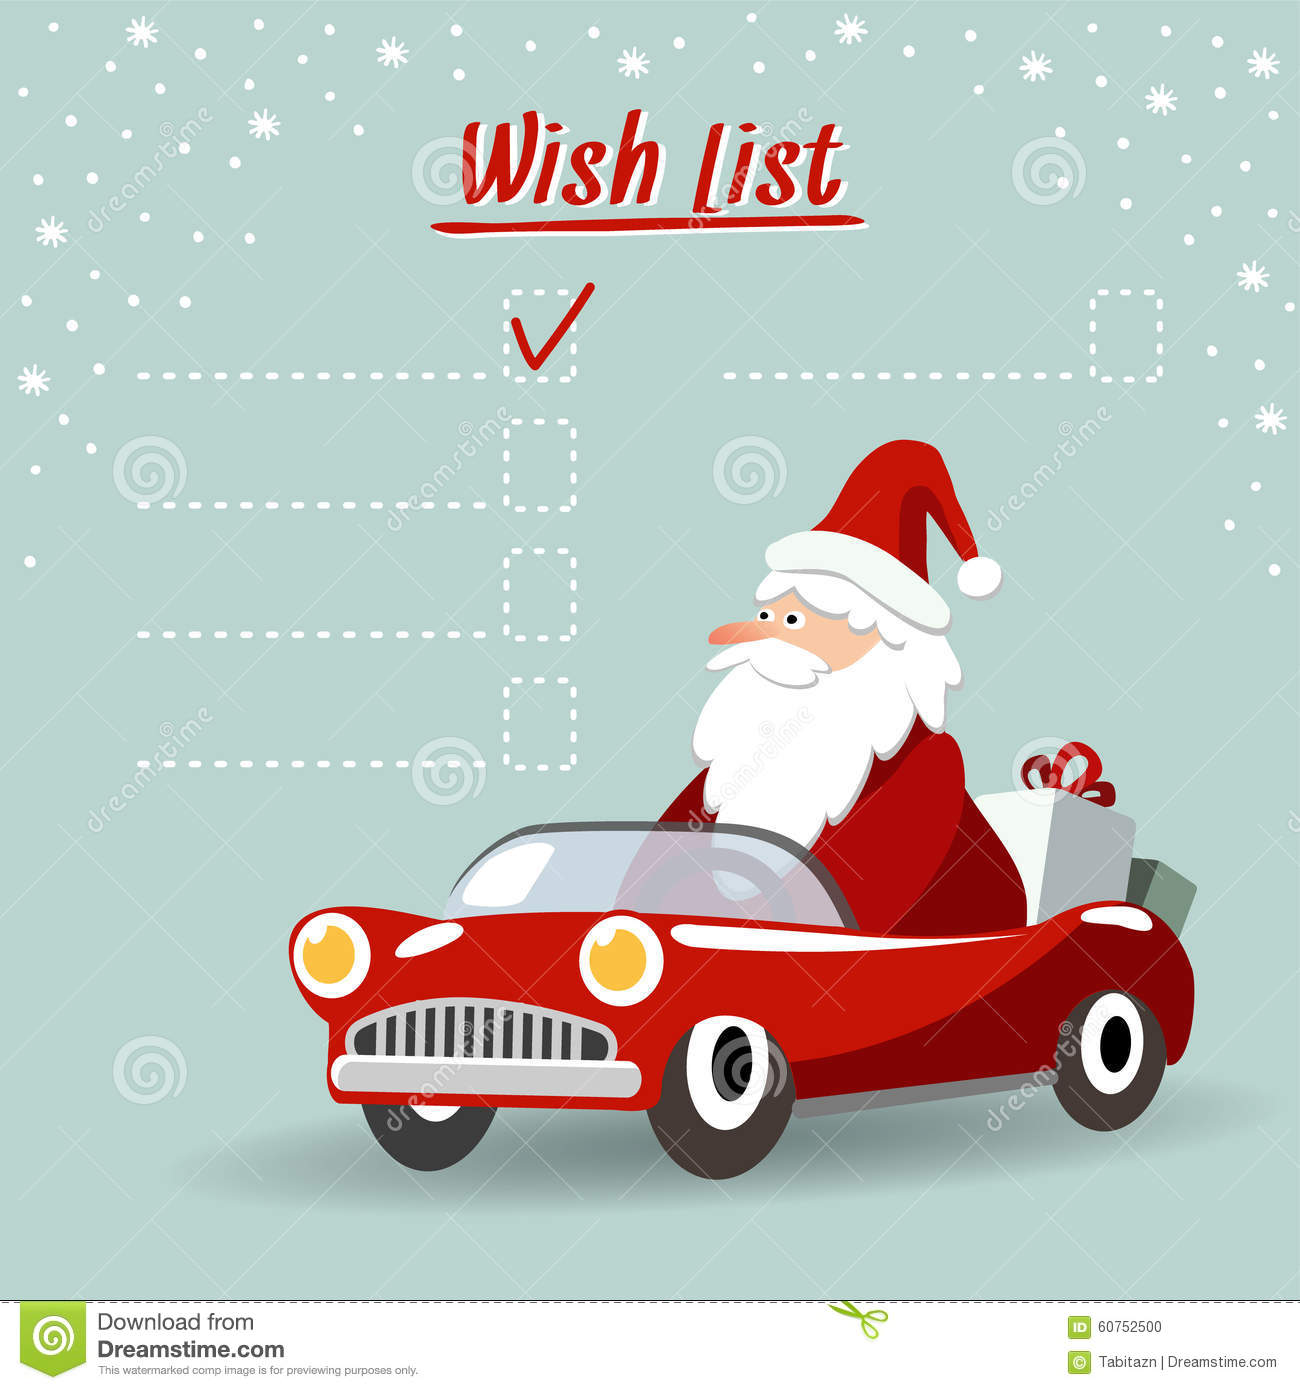 Santa Mechanic Christmas Clipart.